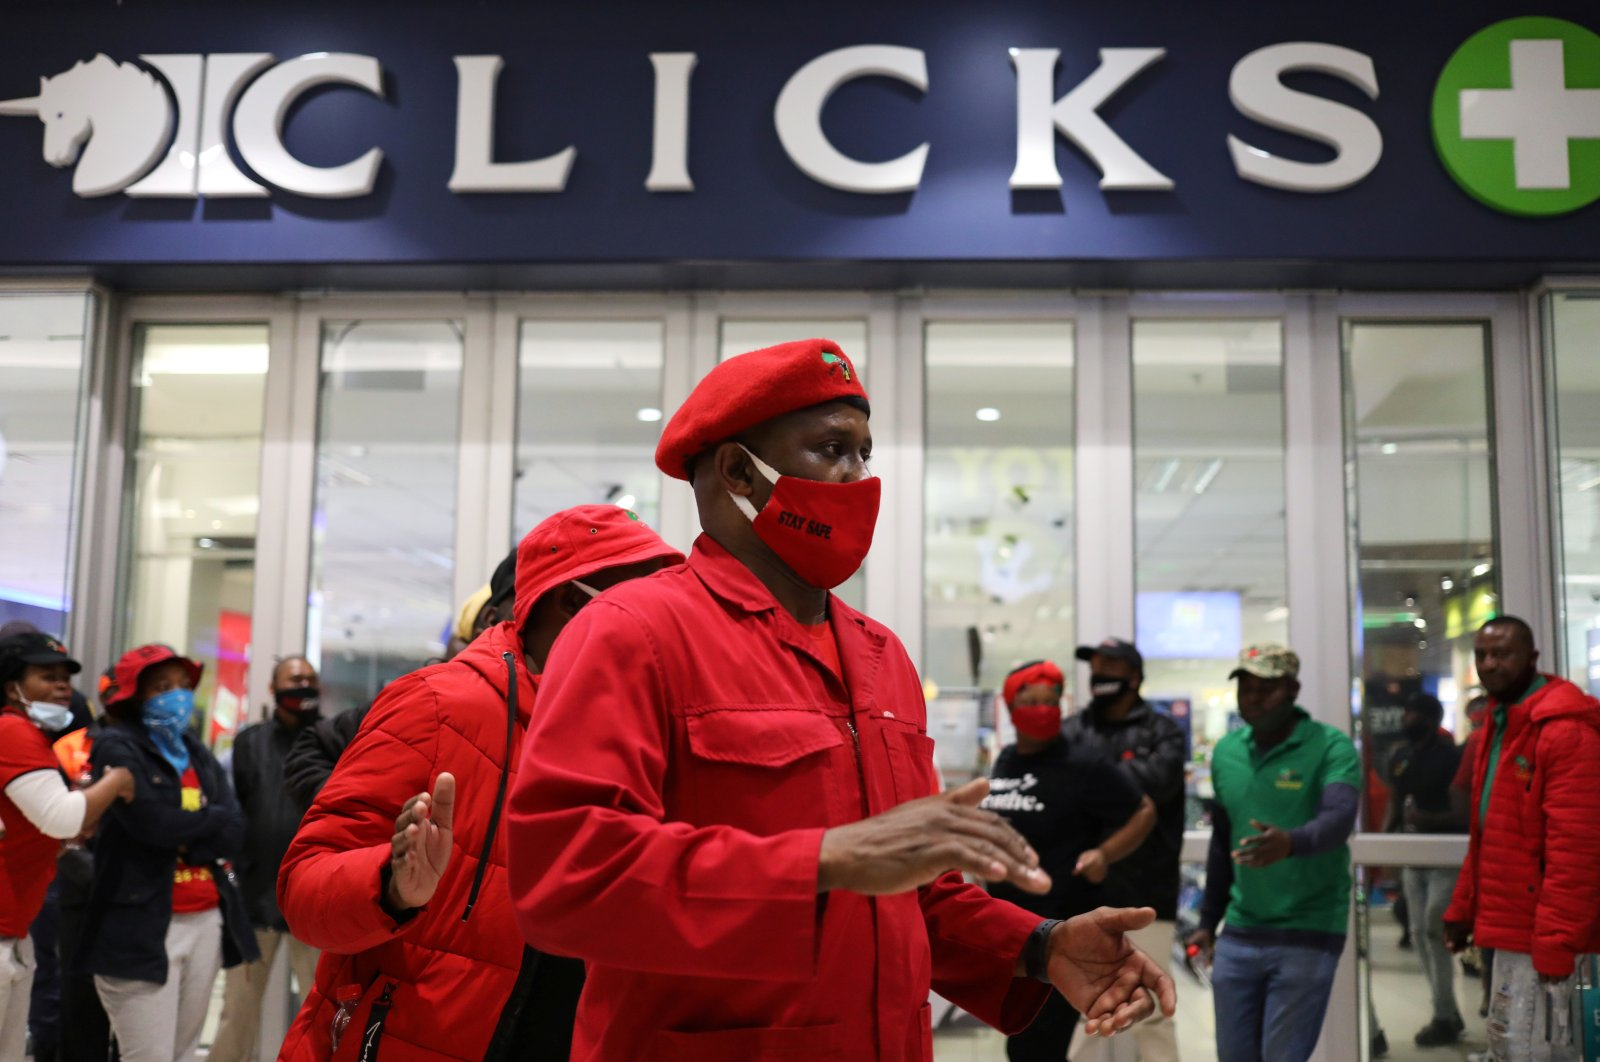 Members of the opposition Economic Freedom Front (EFF) protest outside a branch of drug store chain Clicks in Johannesburg, South Africa, Sept. 7, 2020. (Reuters Photo)